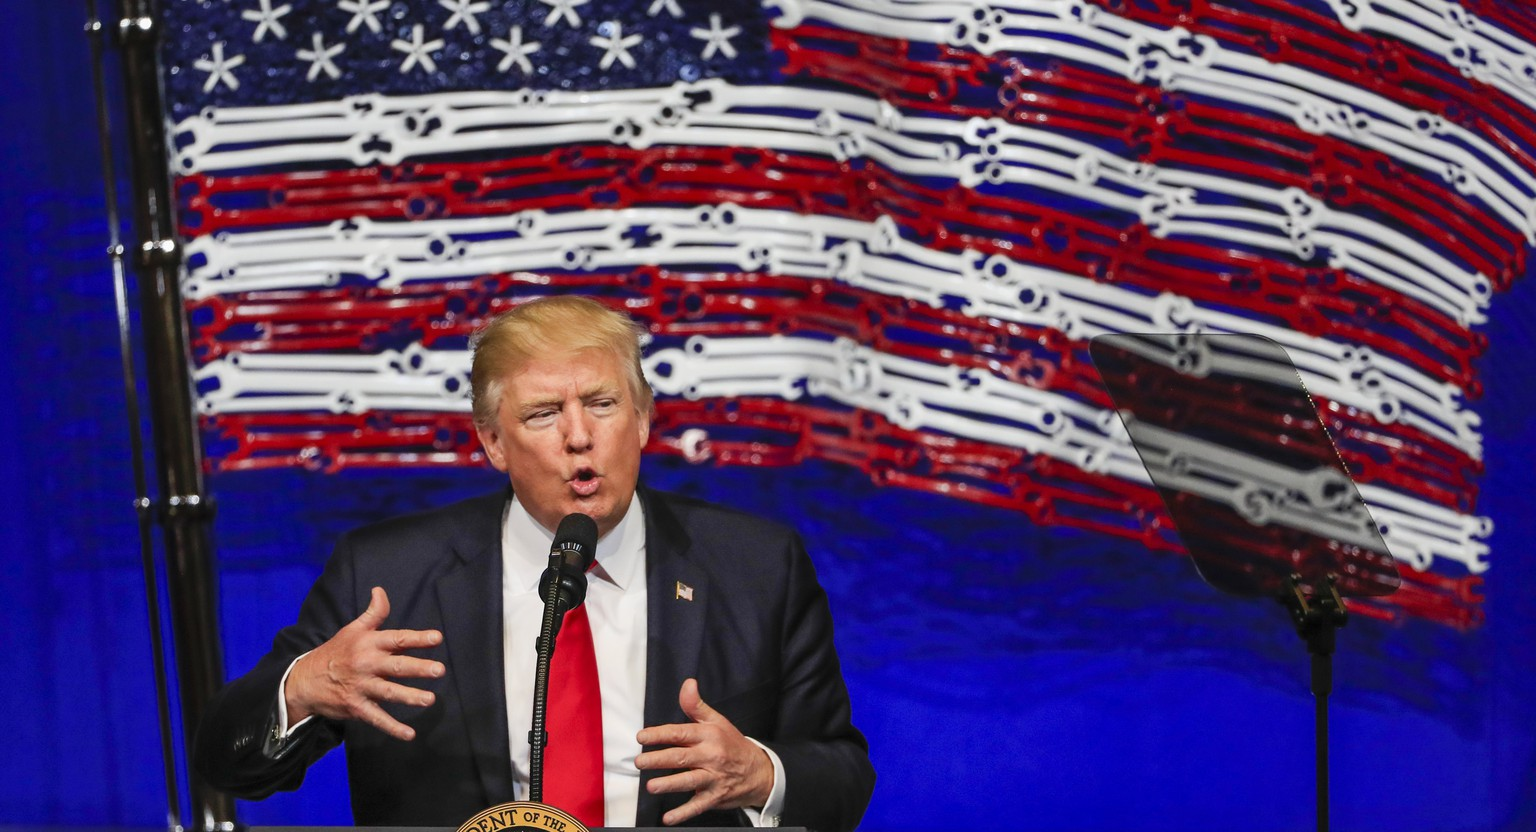 epa05914048 US President Donald J. Trump gestures a he speaks in front of an American flag made of tools at the Snap-on Tools headquarters in Kenosha, Wisconsin, USA, 18 April 2017. Trump spoke on his plan to 'Buy American - Hire American' and signed an executive order to protect American workers and make it harder for foreign contractors to bid on US government endeavors according to administration officials.  EPA/TANNEN MAURY